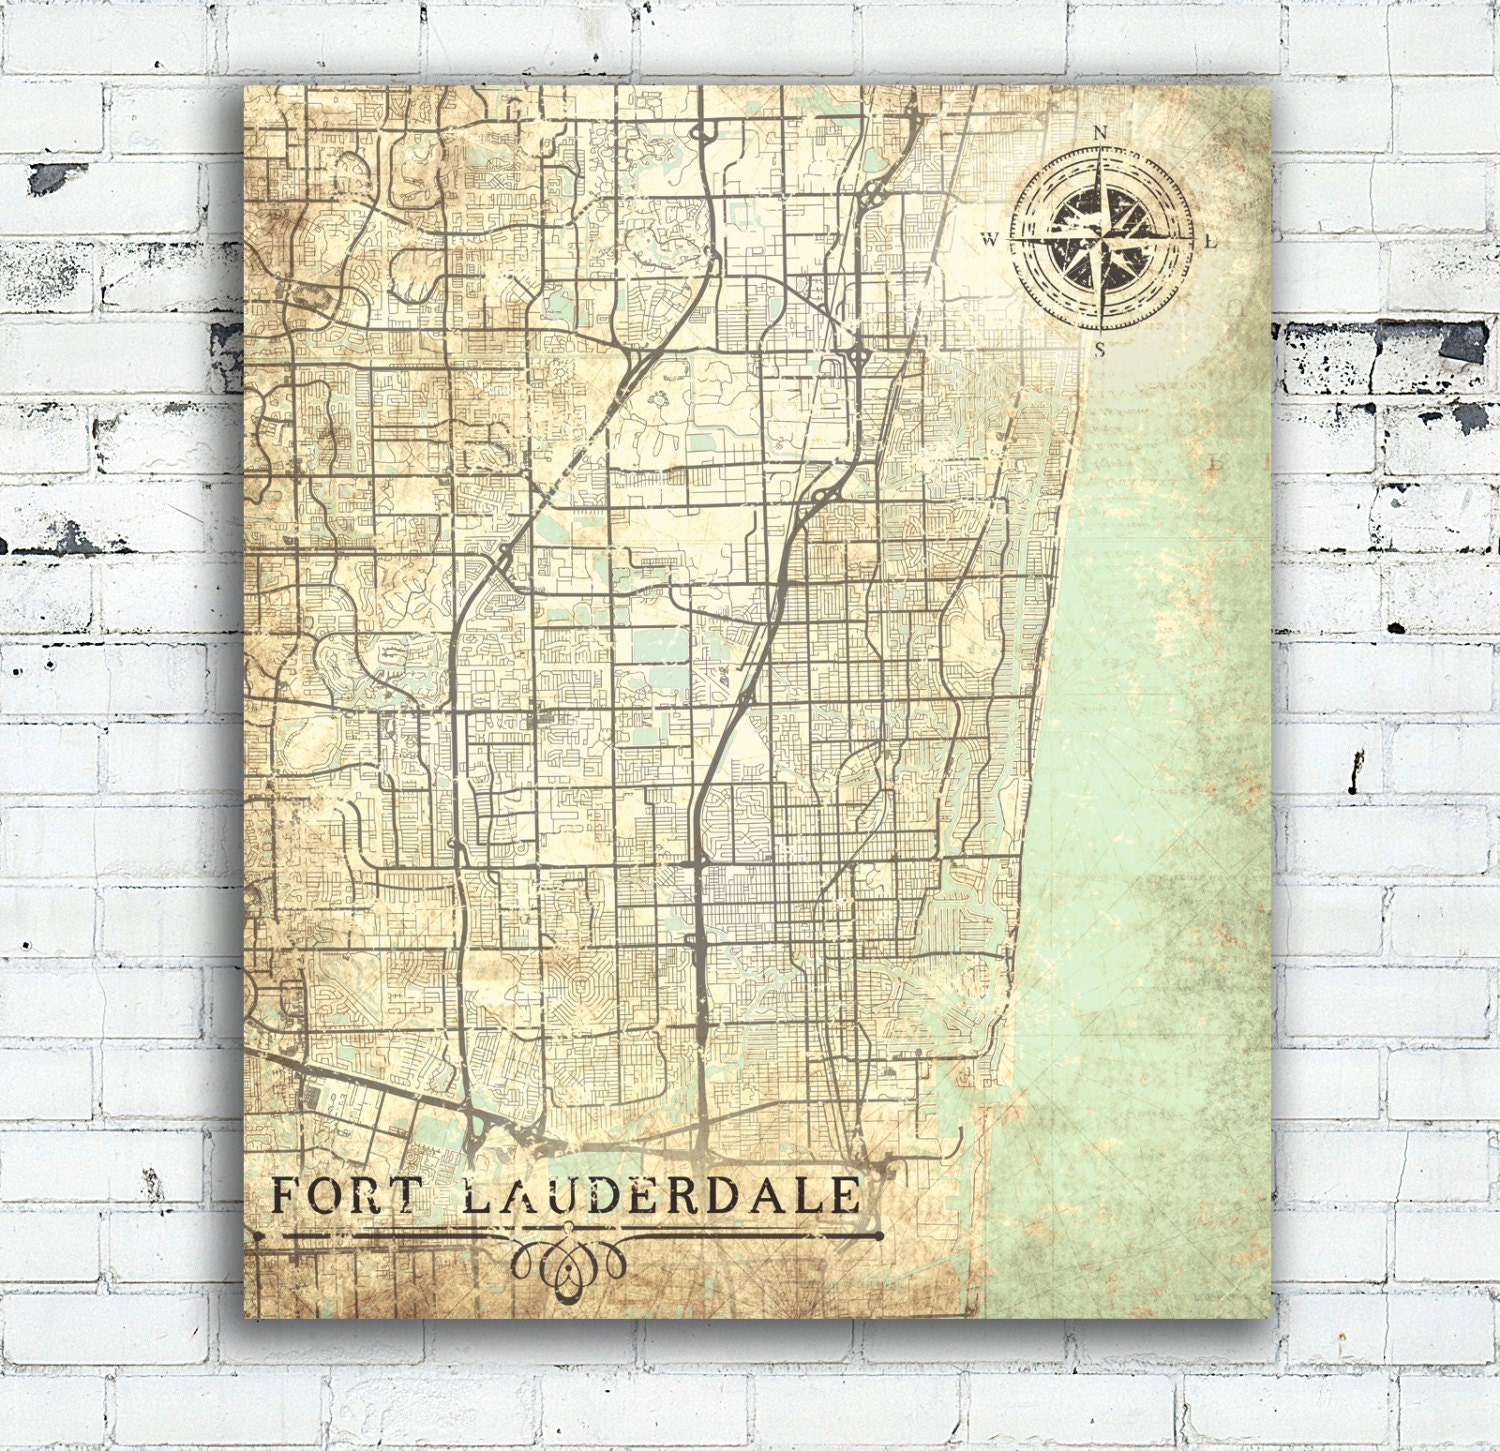 Ft Lauderdale On Map Of Florida.Fort Lauderdale Canvas Print Fl Florida Vintage Map Florida Wall Art